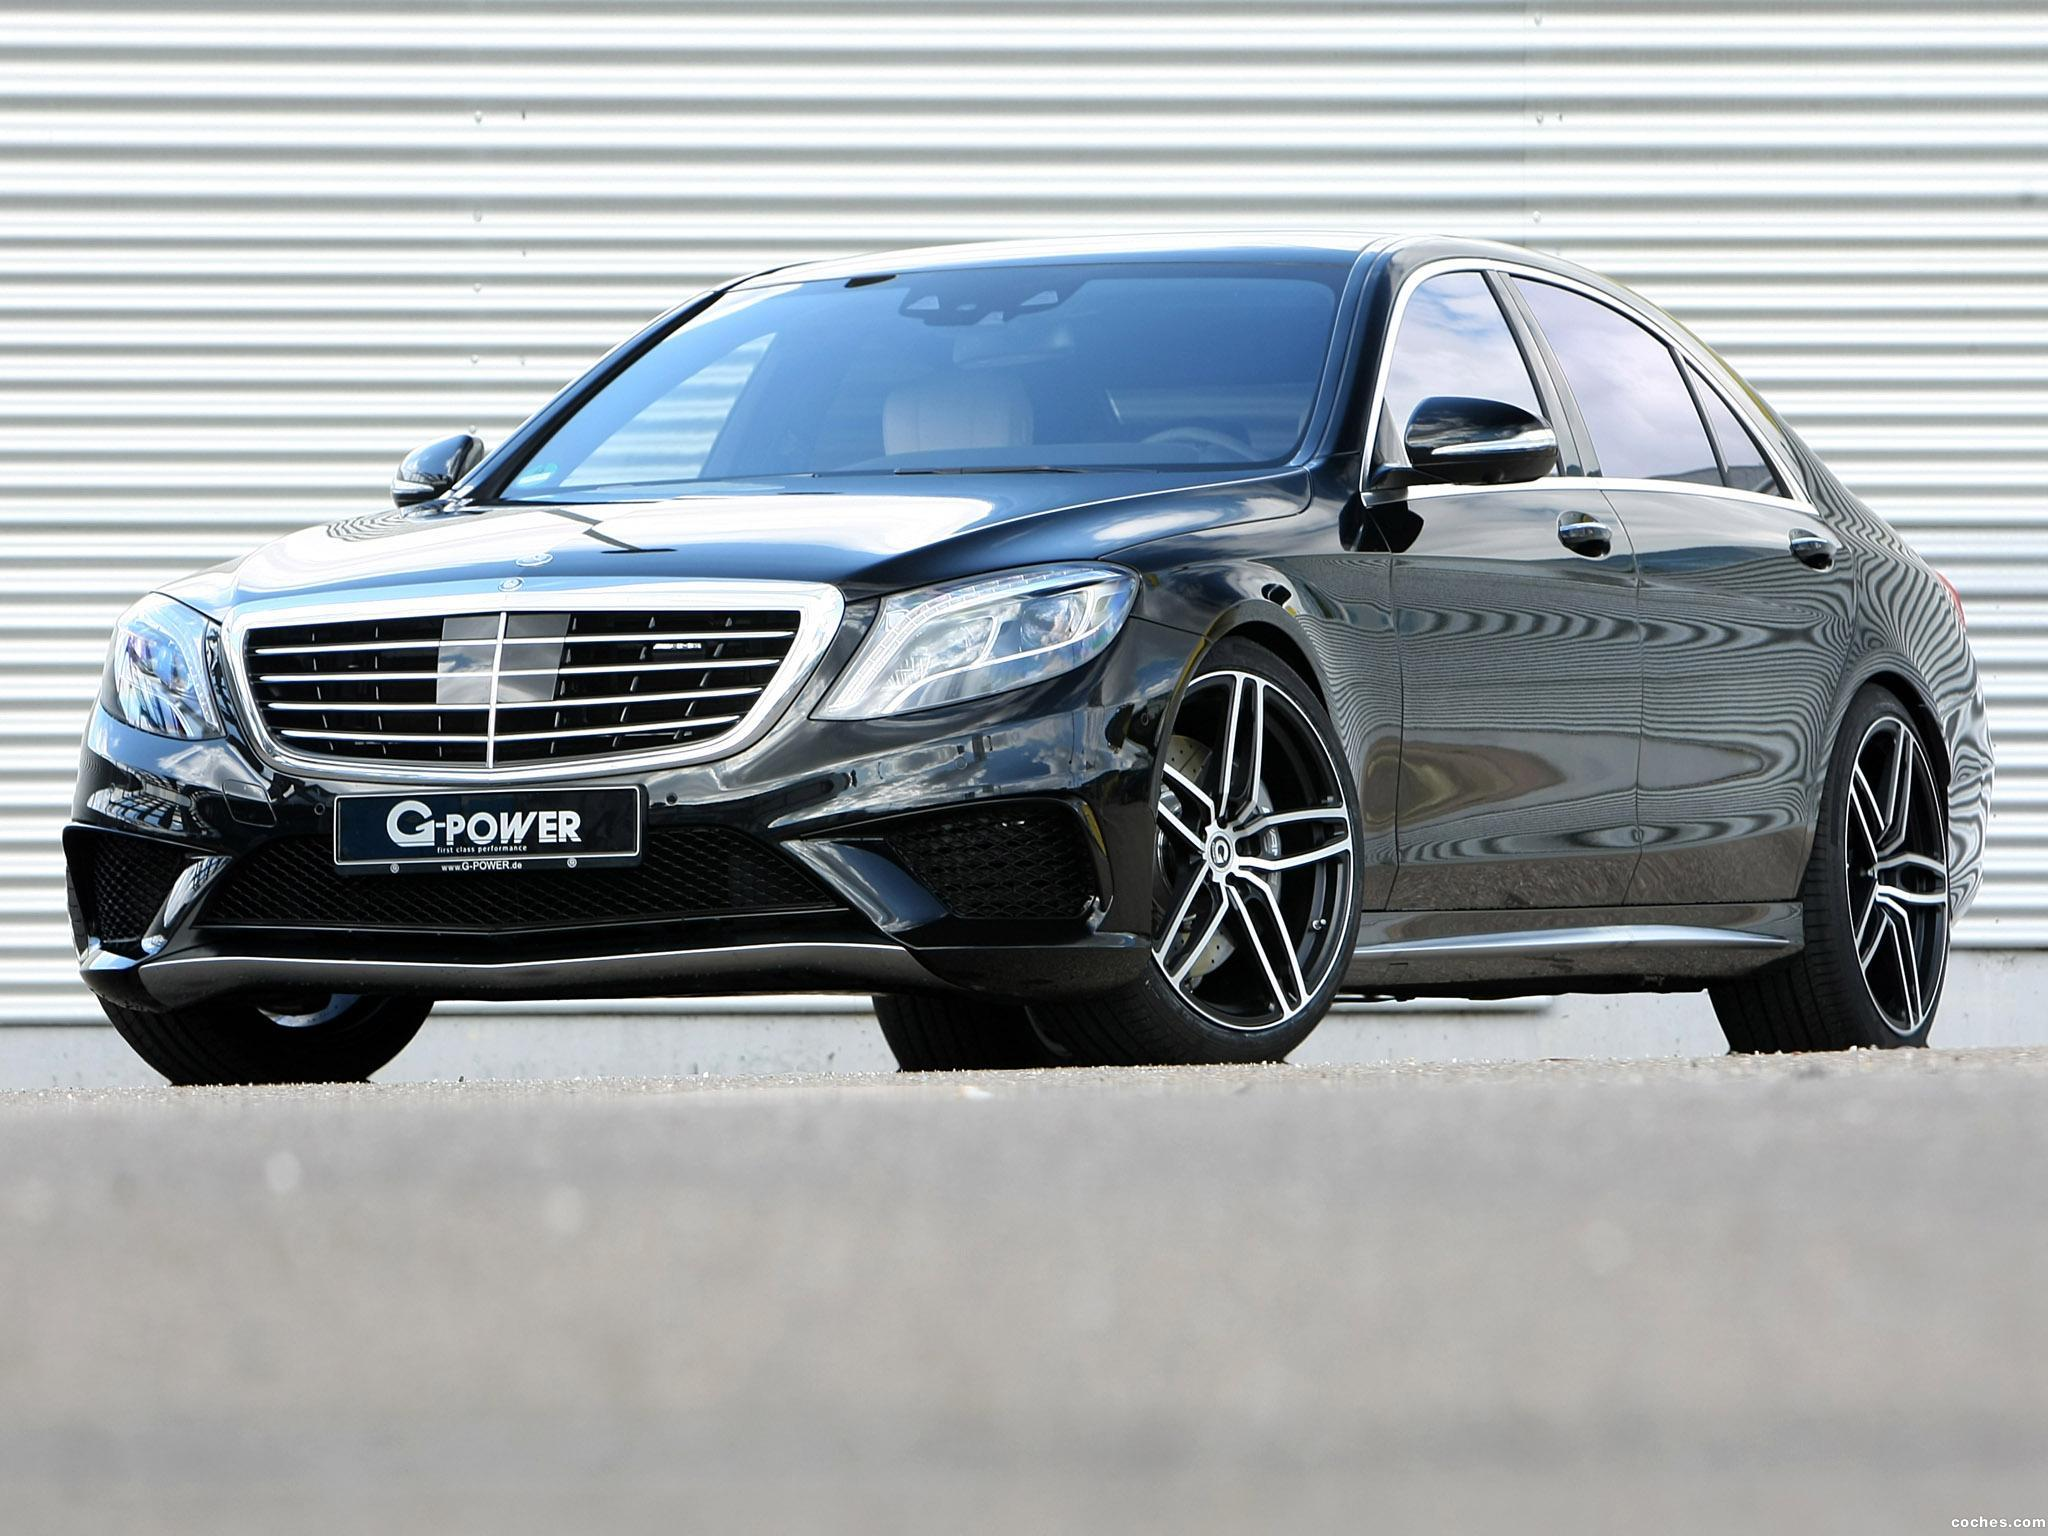 Foto 4 de G-power Mercedes AMG S63 Lang V222 2015